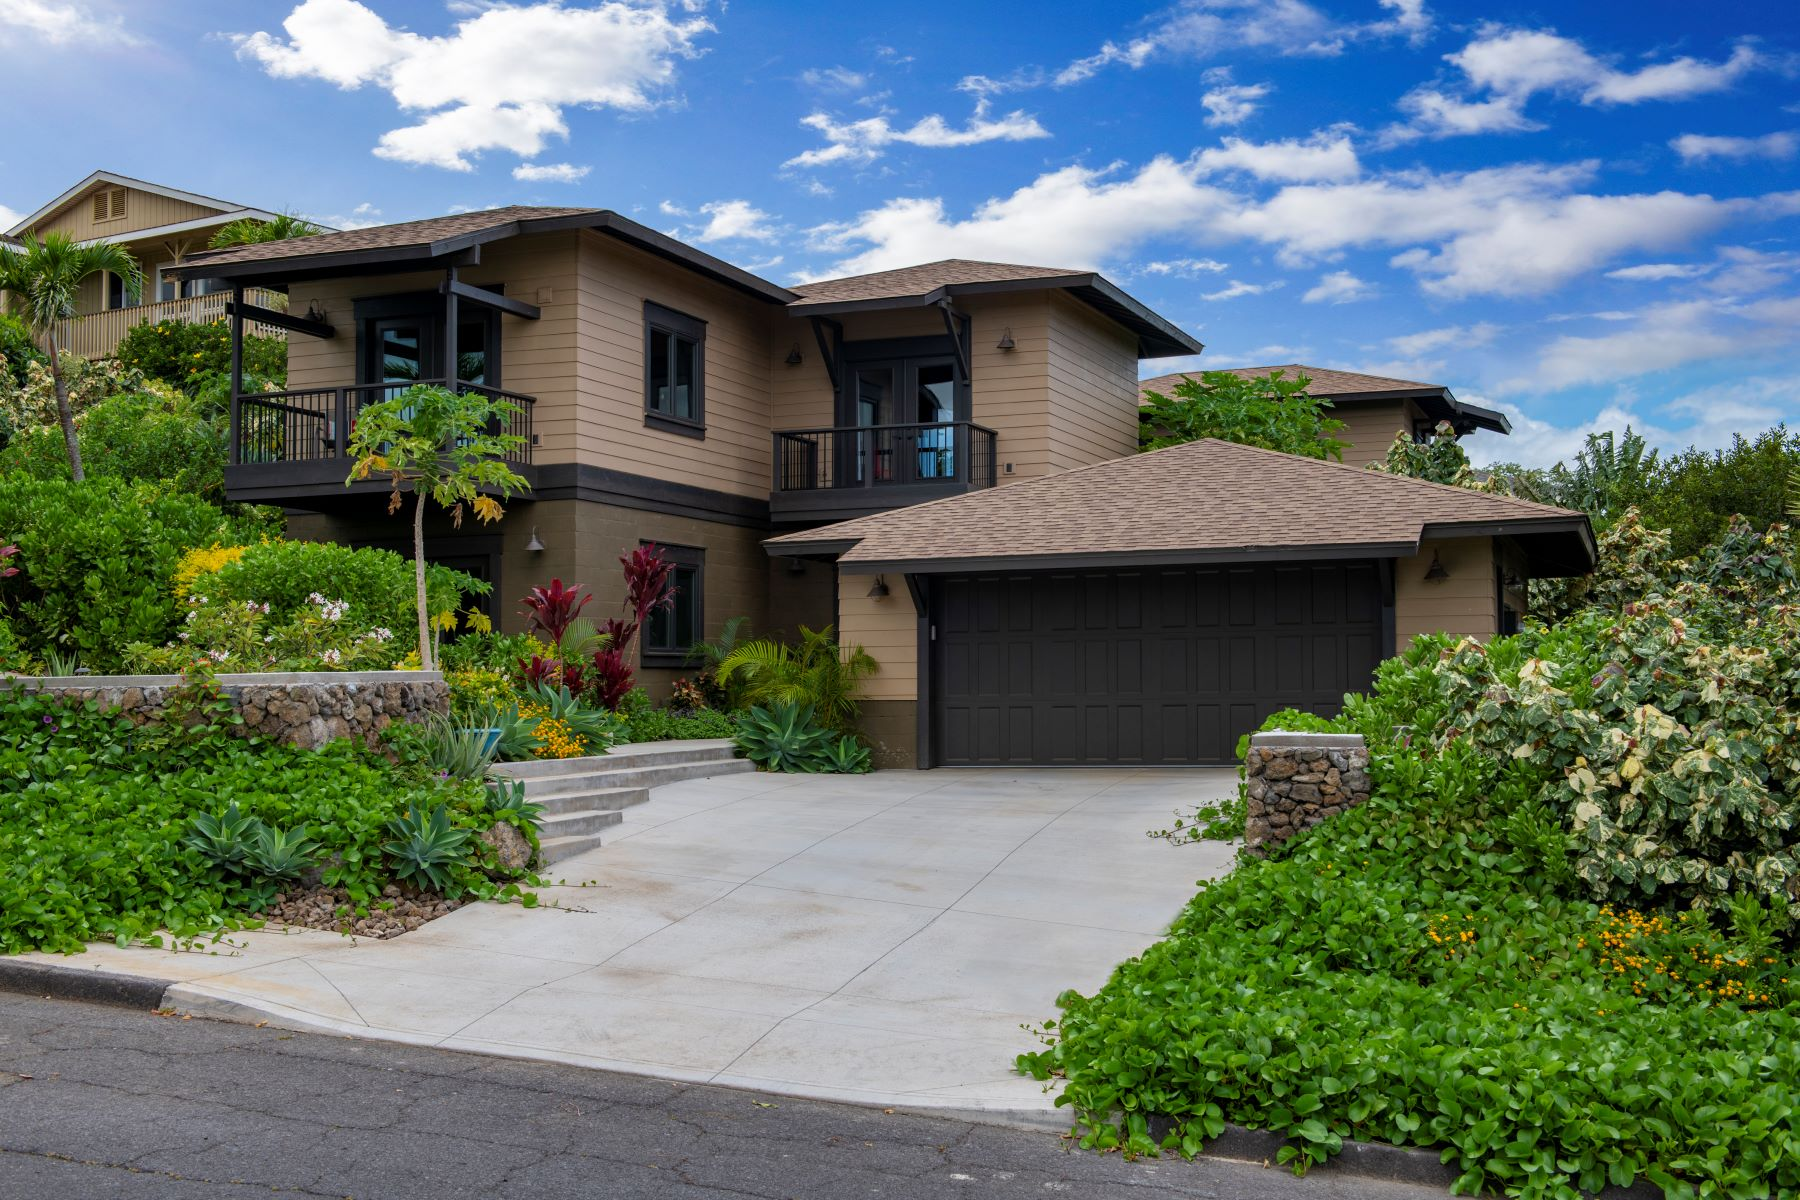 Single Family Homes for Sale at 68-1872 Puu Nui Street, Waikoloa Village, HI 96738 68-1872 Puu Nui Street Waikoloa, Hawaii 96738 United States